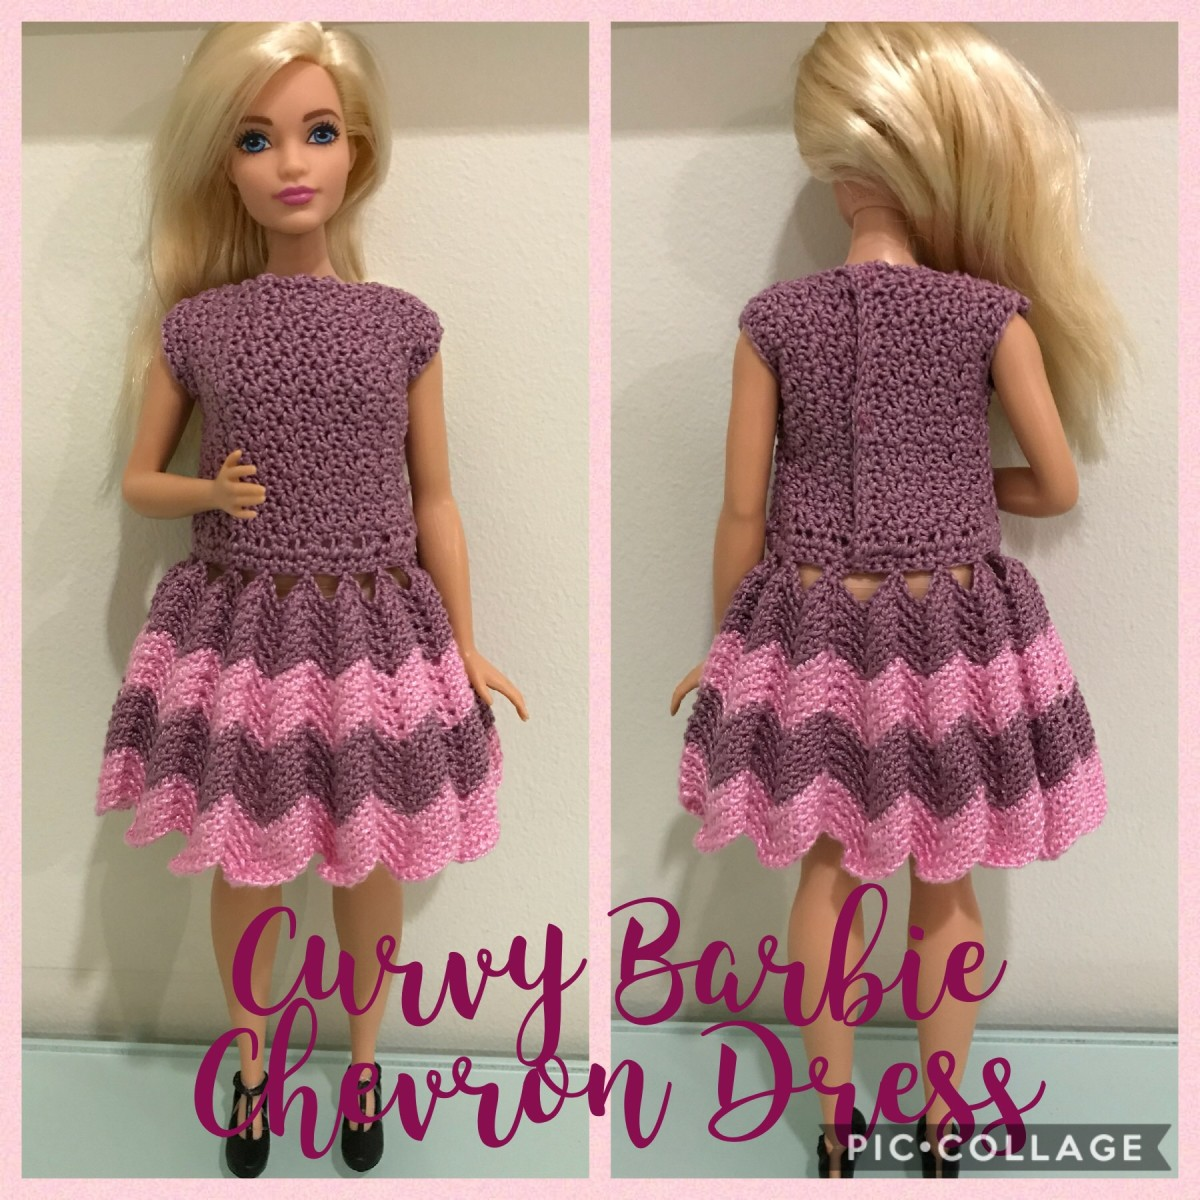 Curvy Barbie Chevron Dress Free Crochet Pattern Feltmagnet